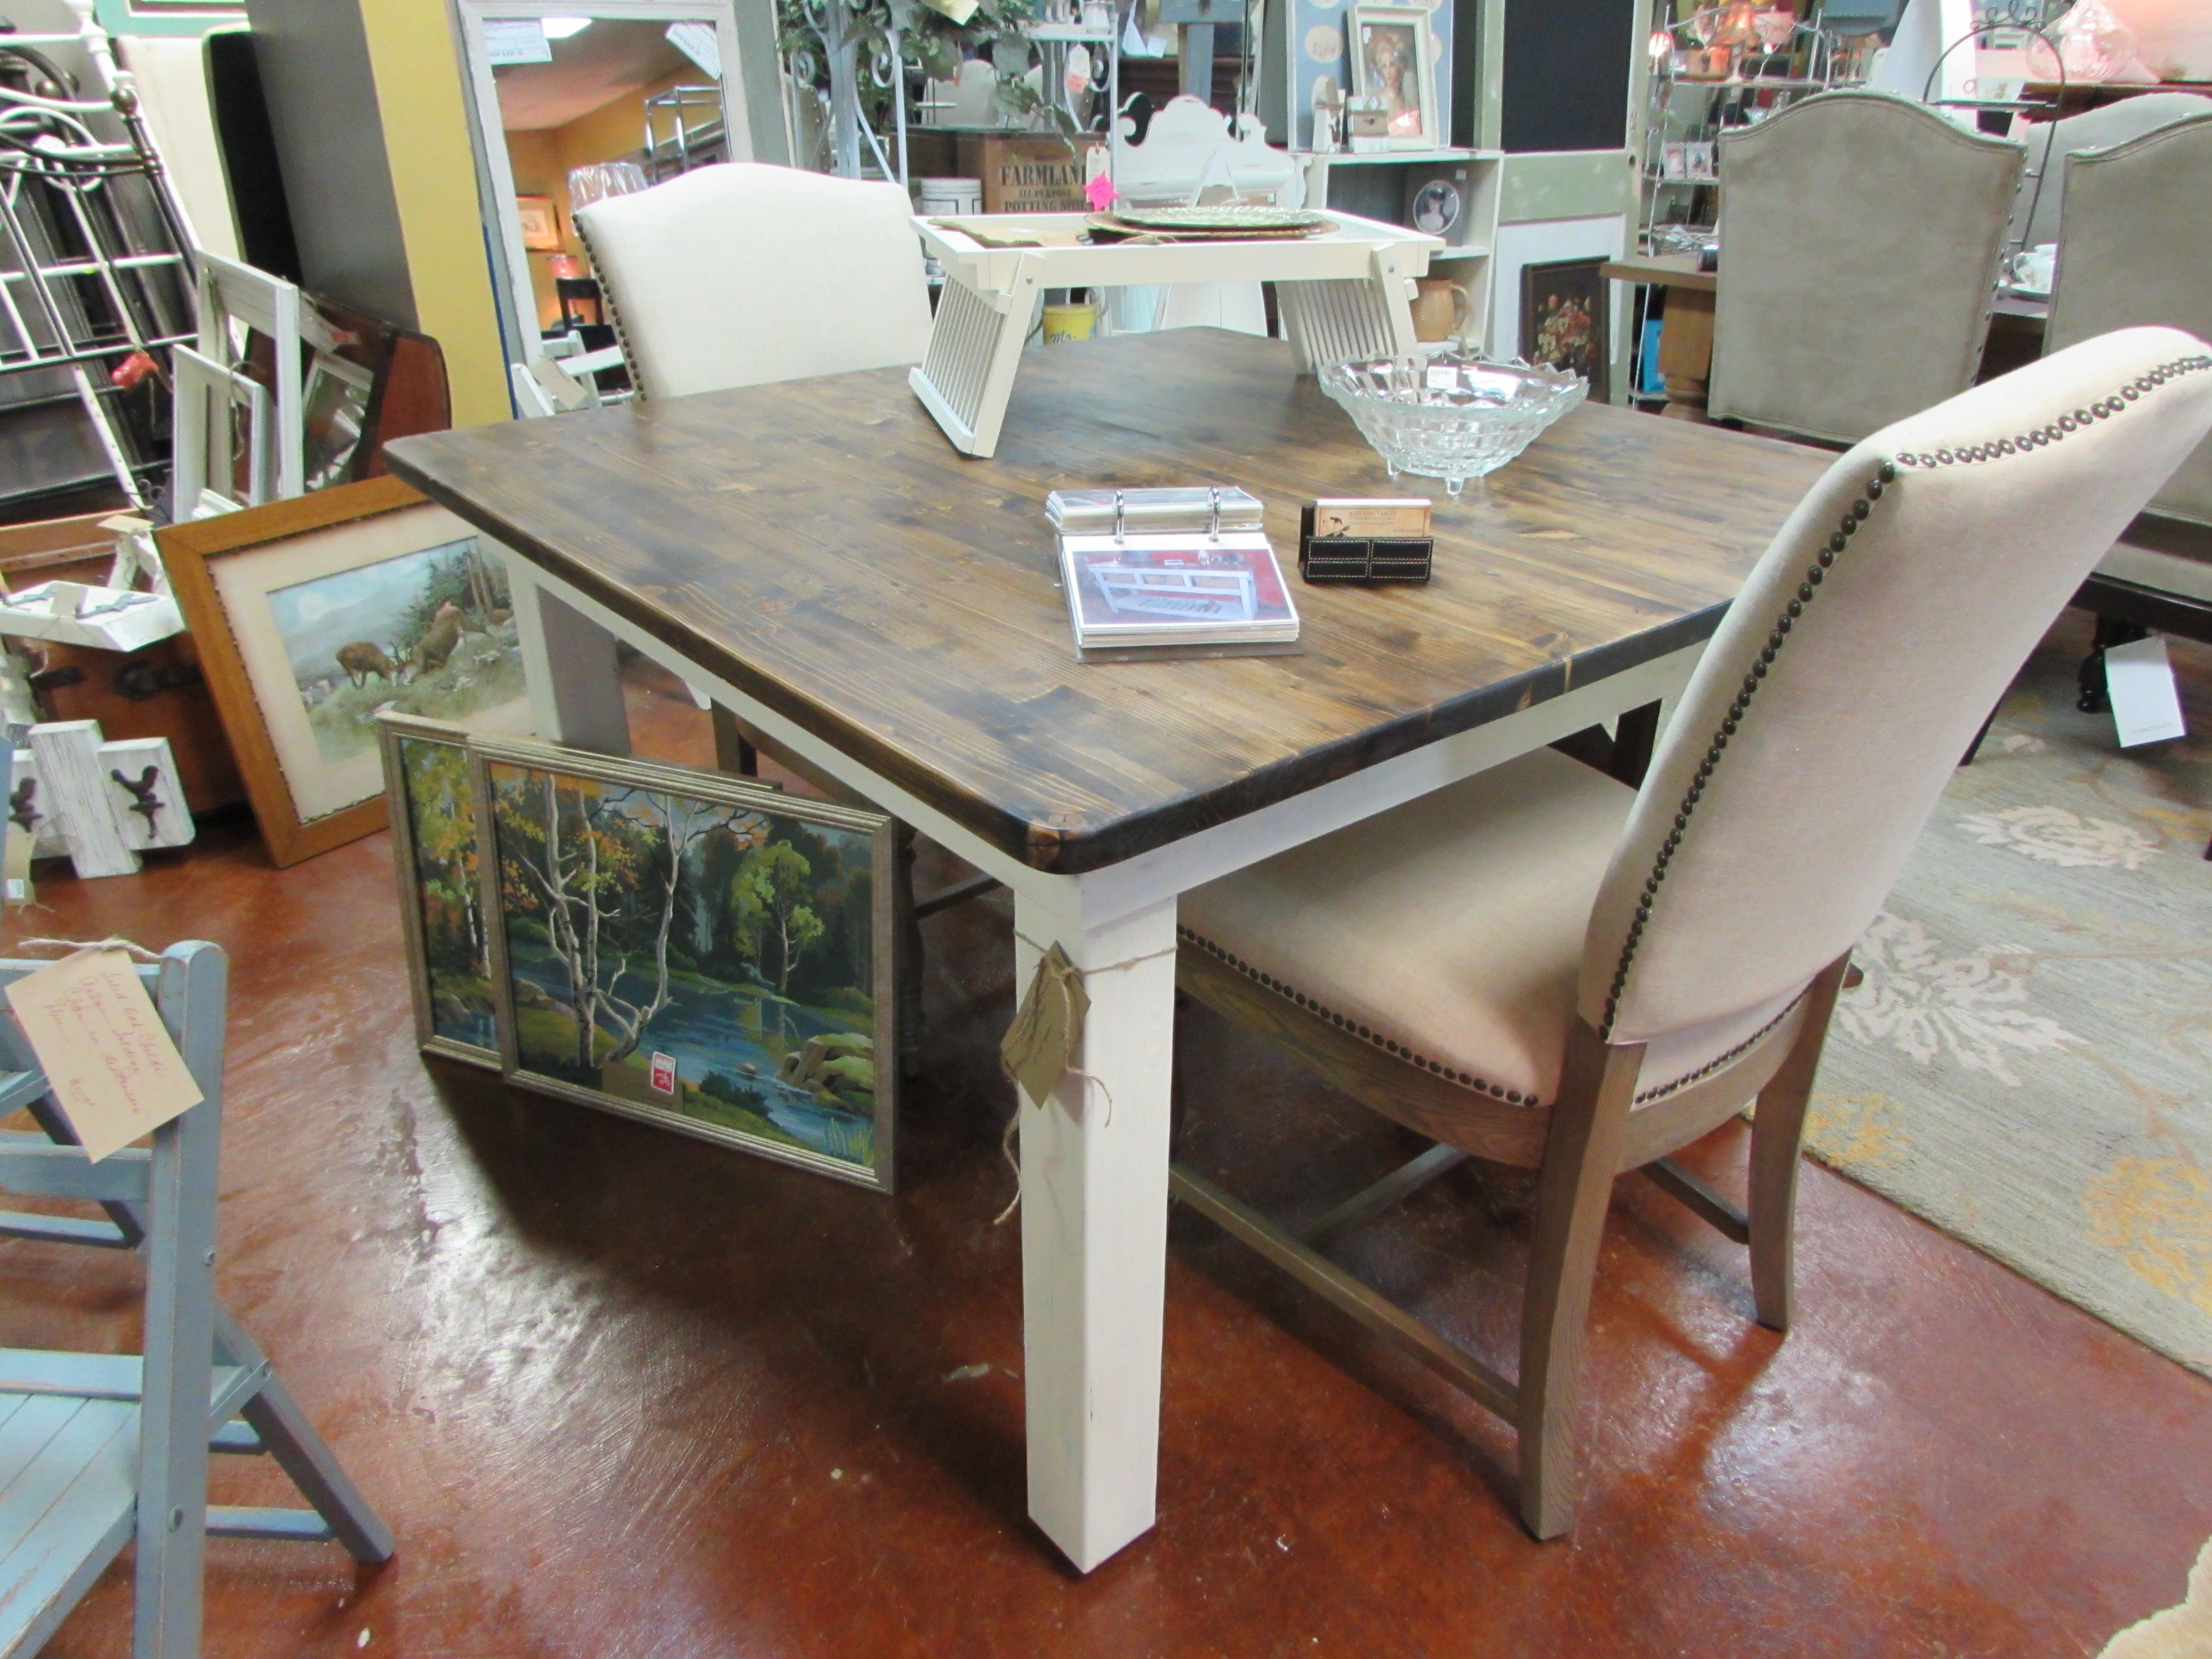 A DISTRESSED SQUARE FARMHOUSE TABLE & A DOOR CHALKBOARD